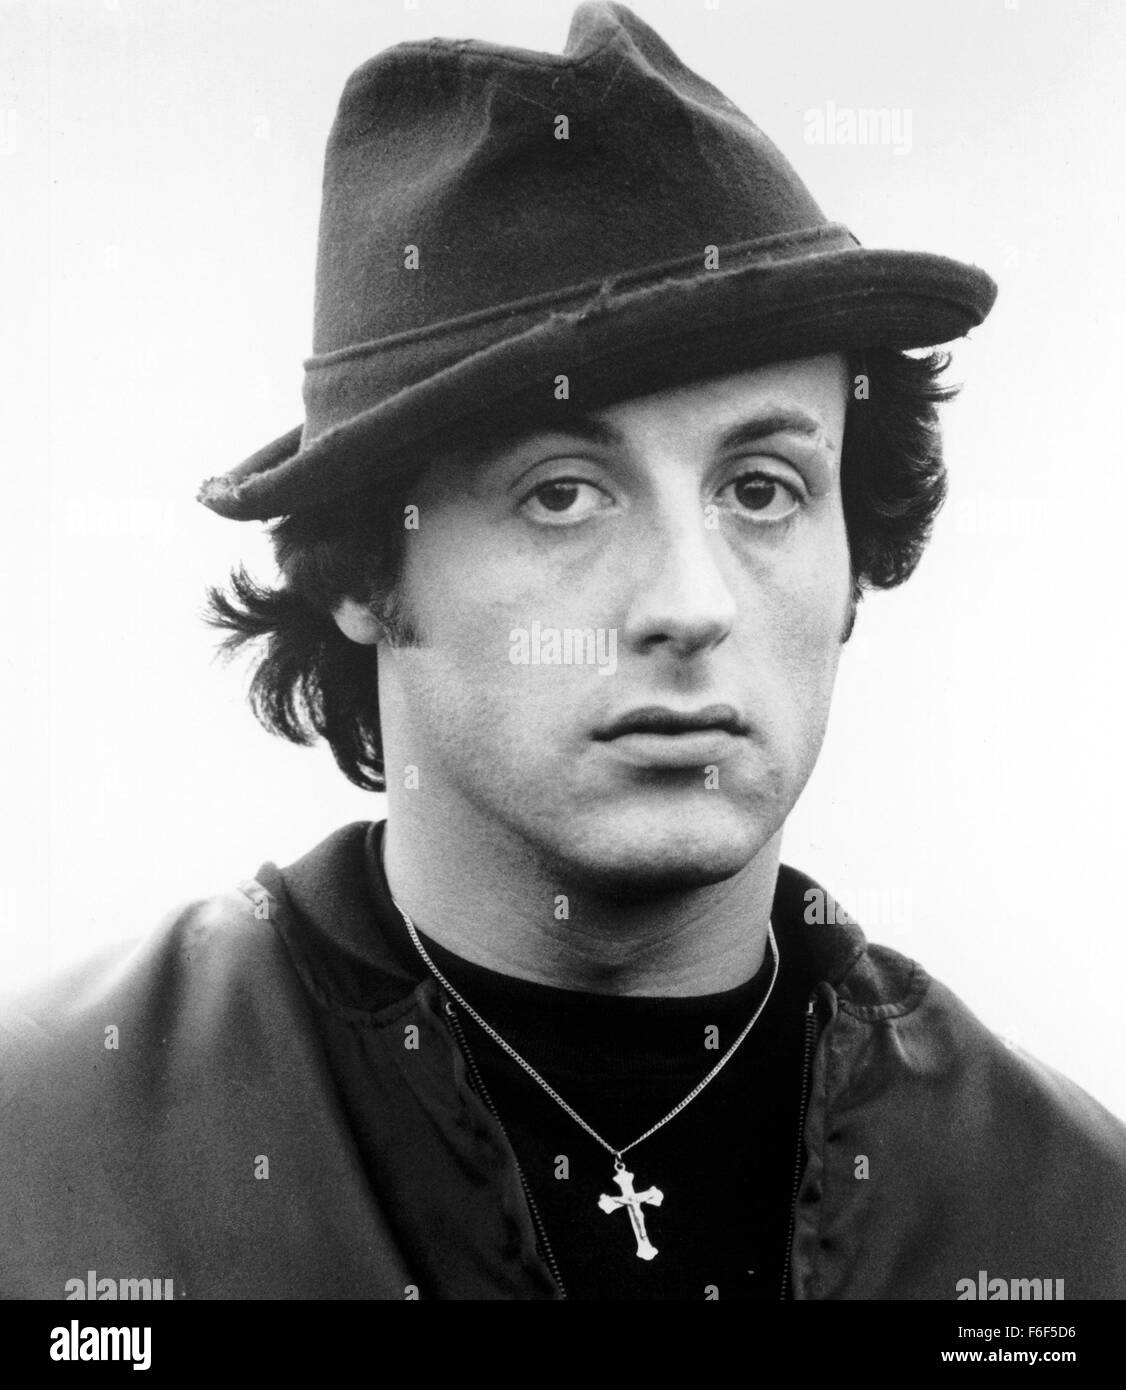 Sylvester Stallone | Motivation Posters, Quotes &amp- How He Became ...